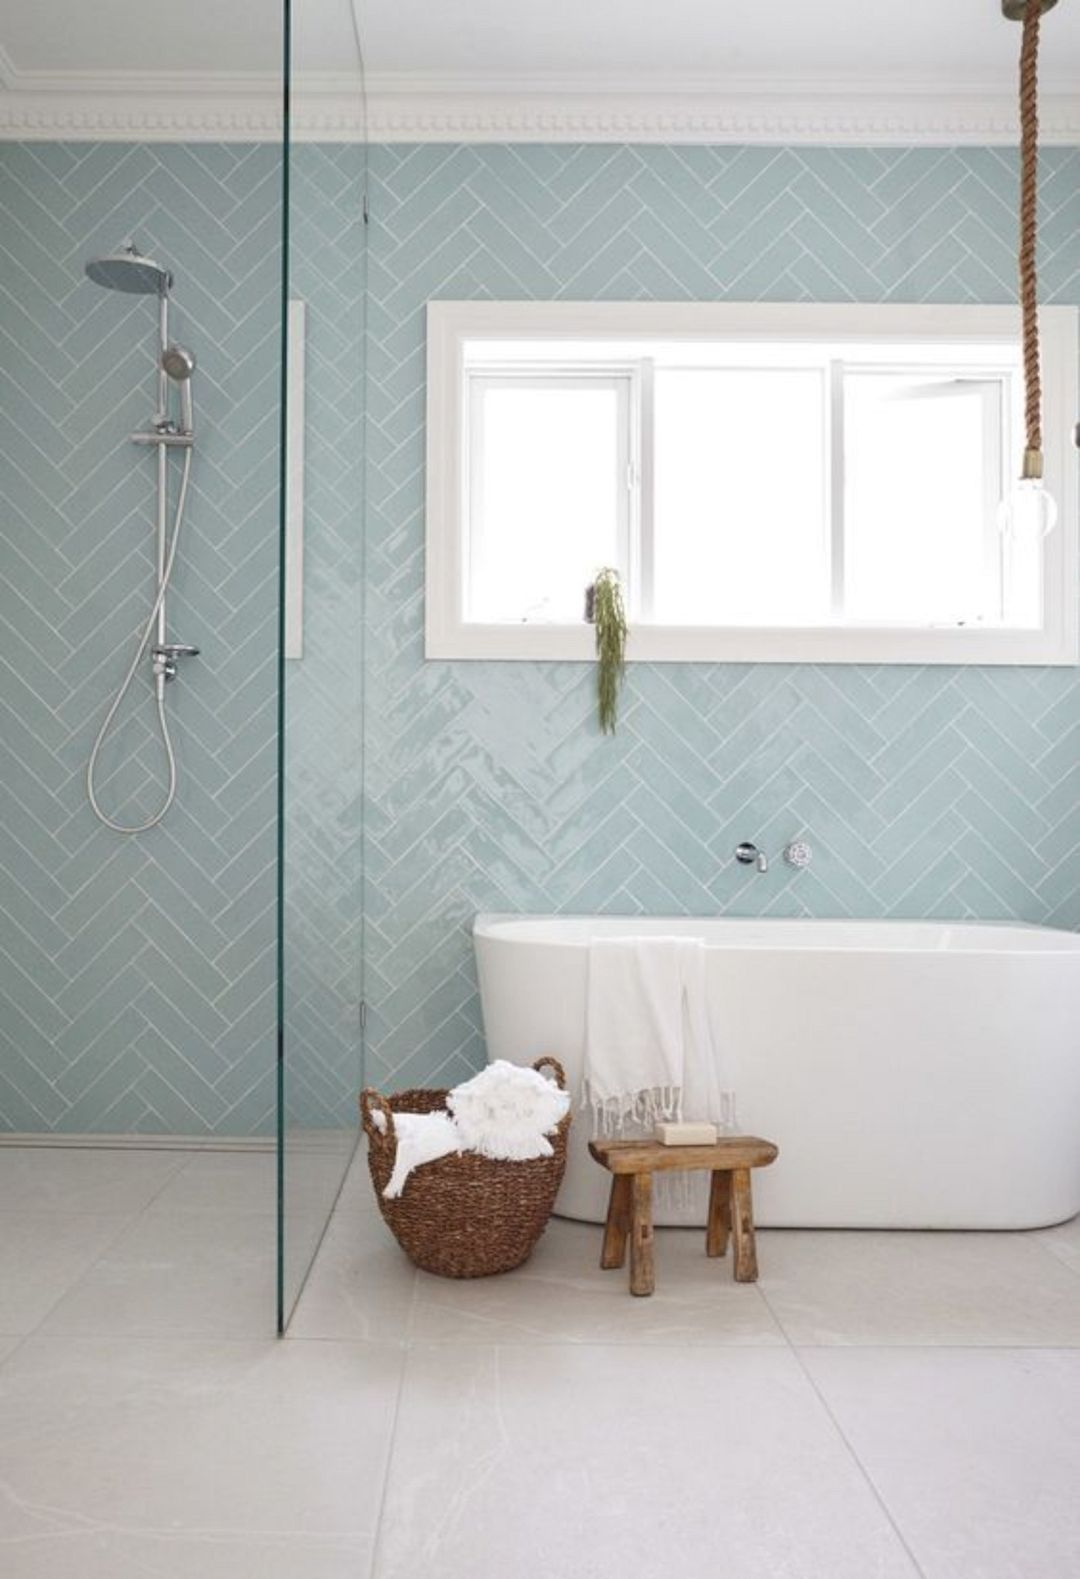 Bathroom Tiles Ideas 1 | Interior homes | Pinterest | Tile ideas ...